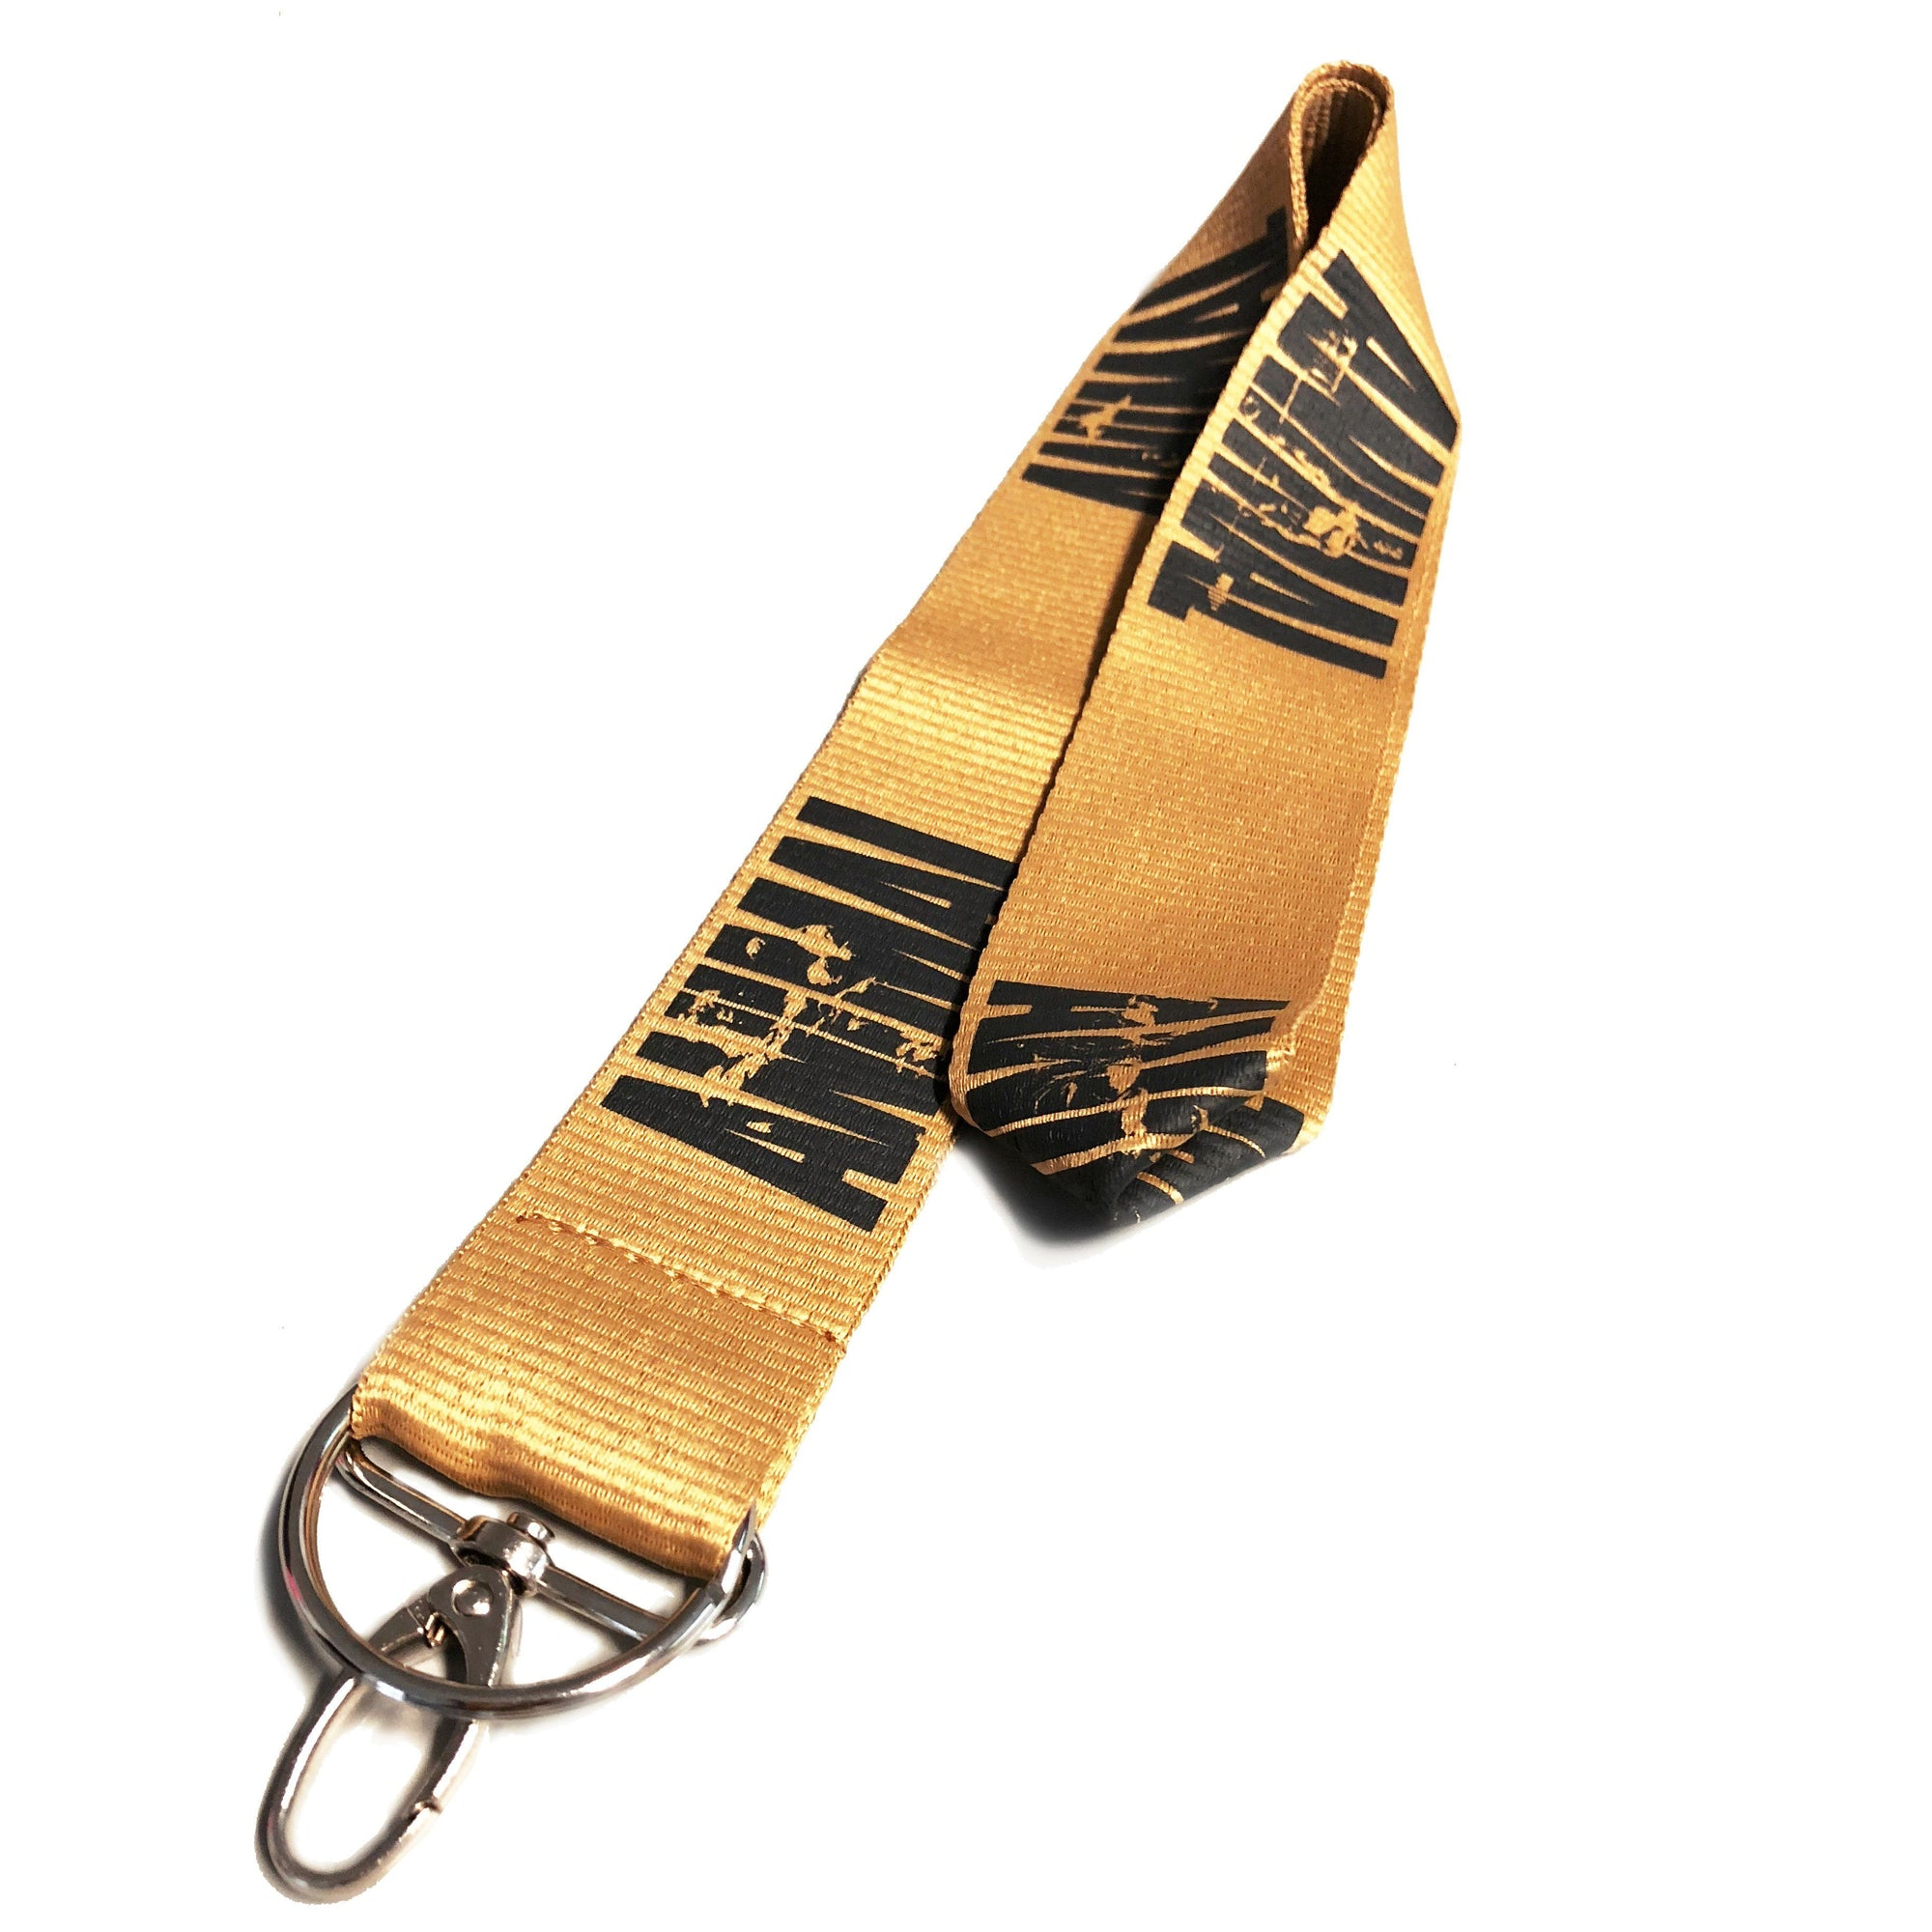 Universal Animal Yellow/Gold Lanyard Fitness Accessories and Apparel Universal  (1263135129643)